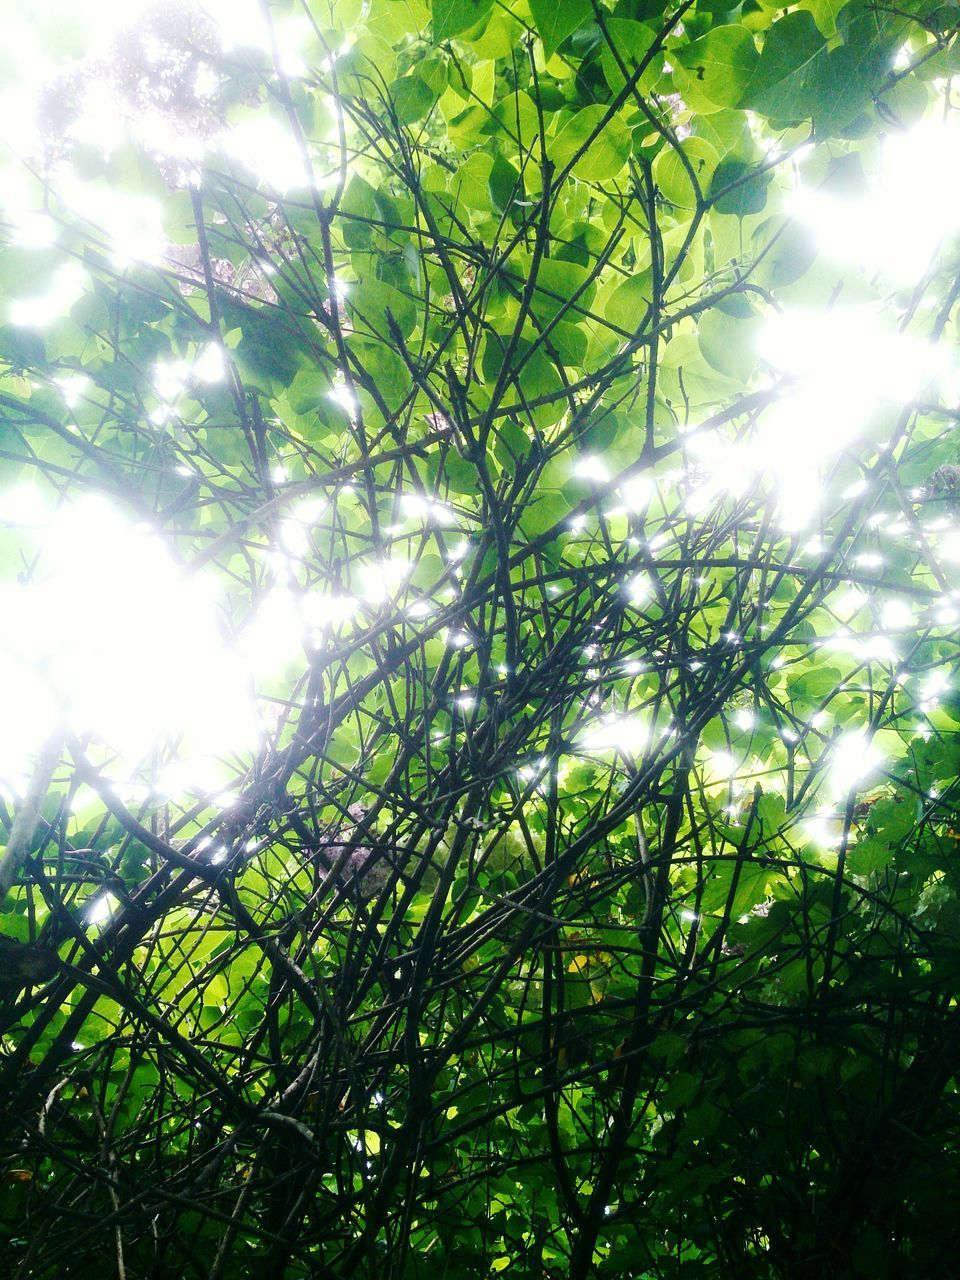 nature, low angle view, growth, tree, beauty in nature, green color, day, no people, outdoors, tranquility, sunlight, branch, plant, forest, scenics, sky